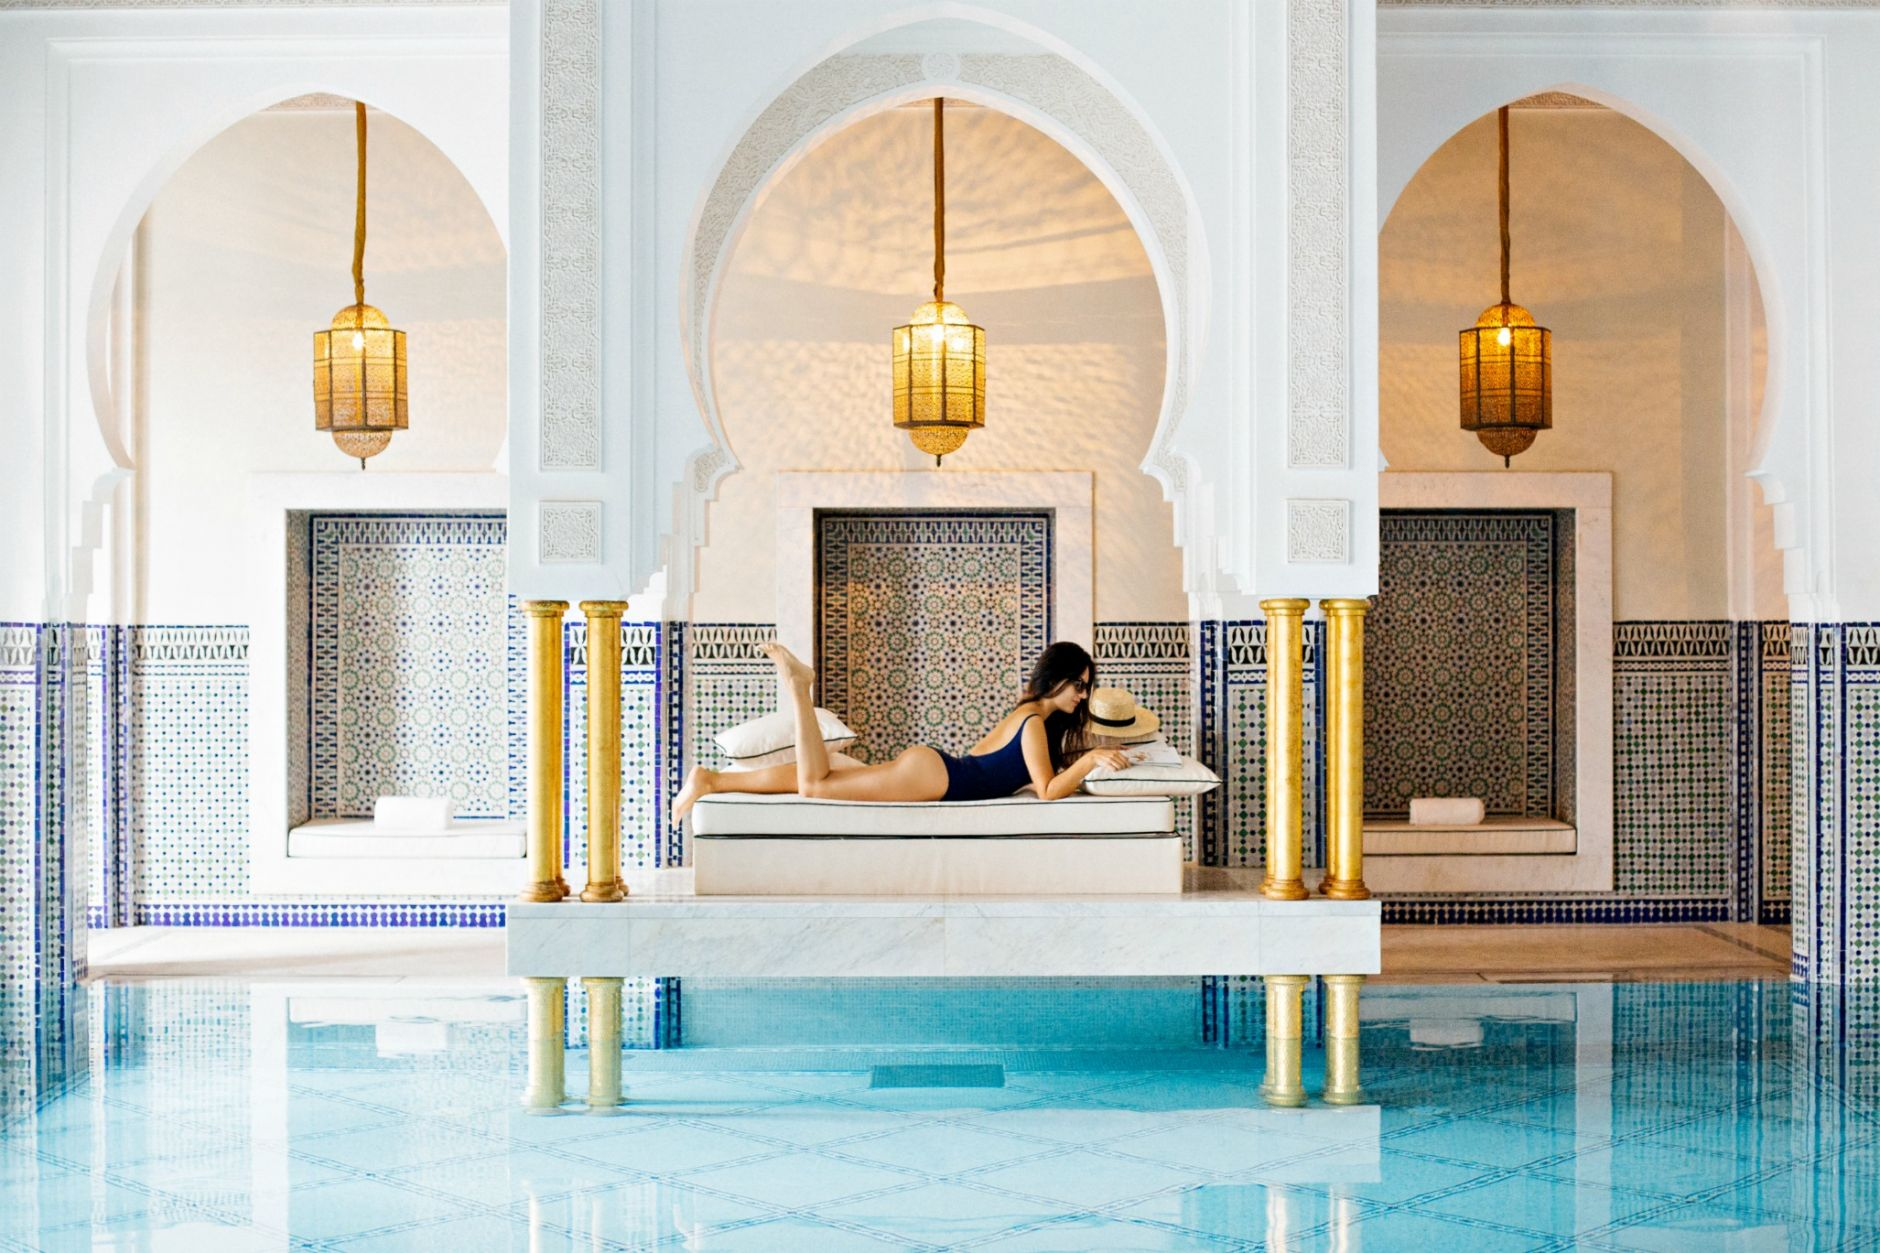 palace-in-marrakesh-morocco-la-mamounia-5-star-luxury-hotel-spa-03